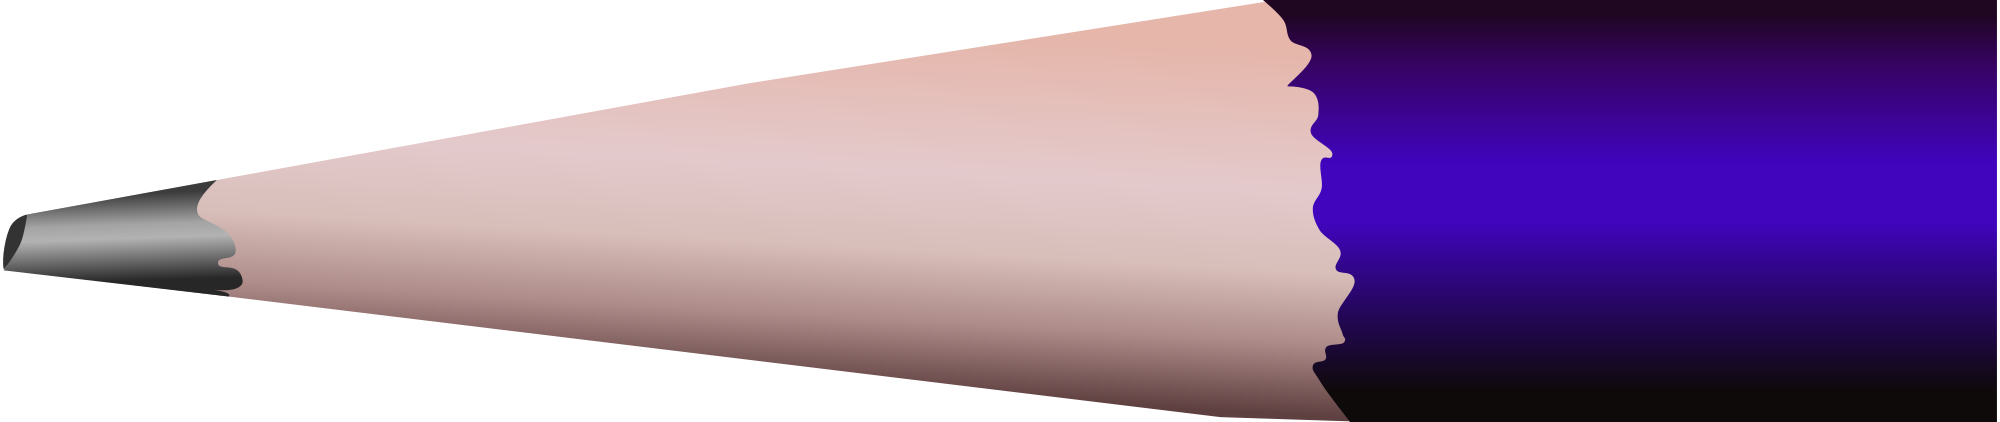 Tip Of Pencil PNG - 57081